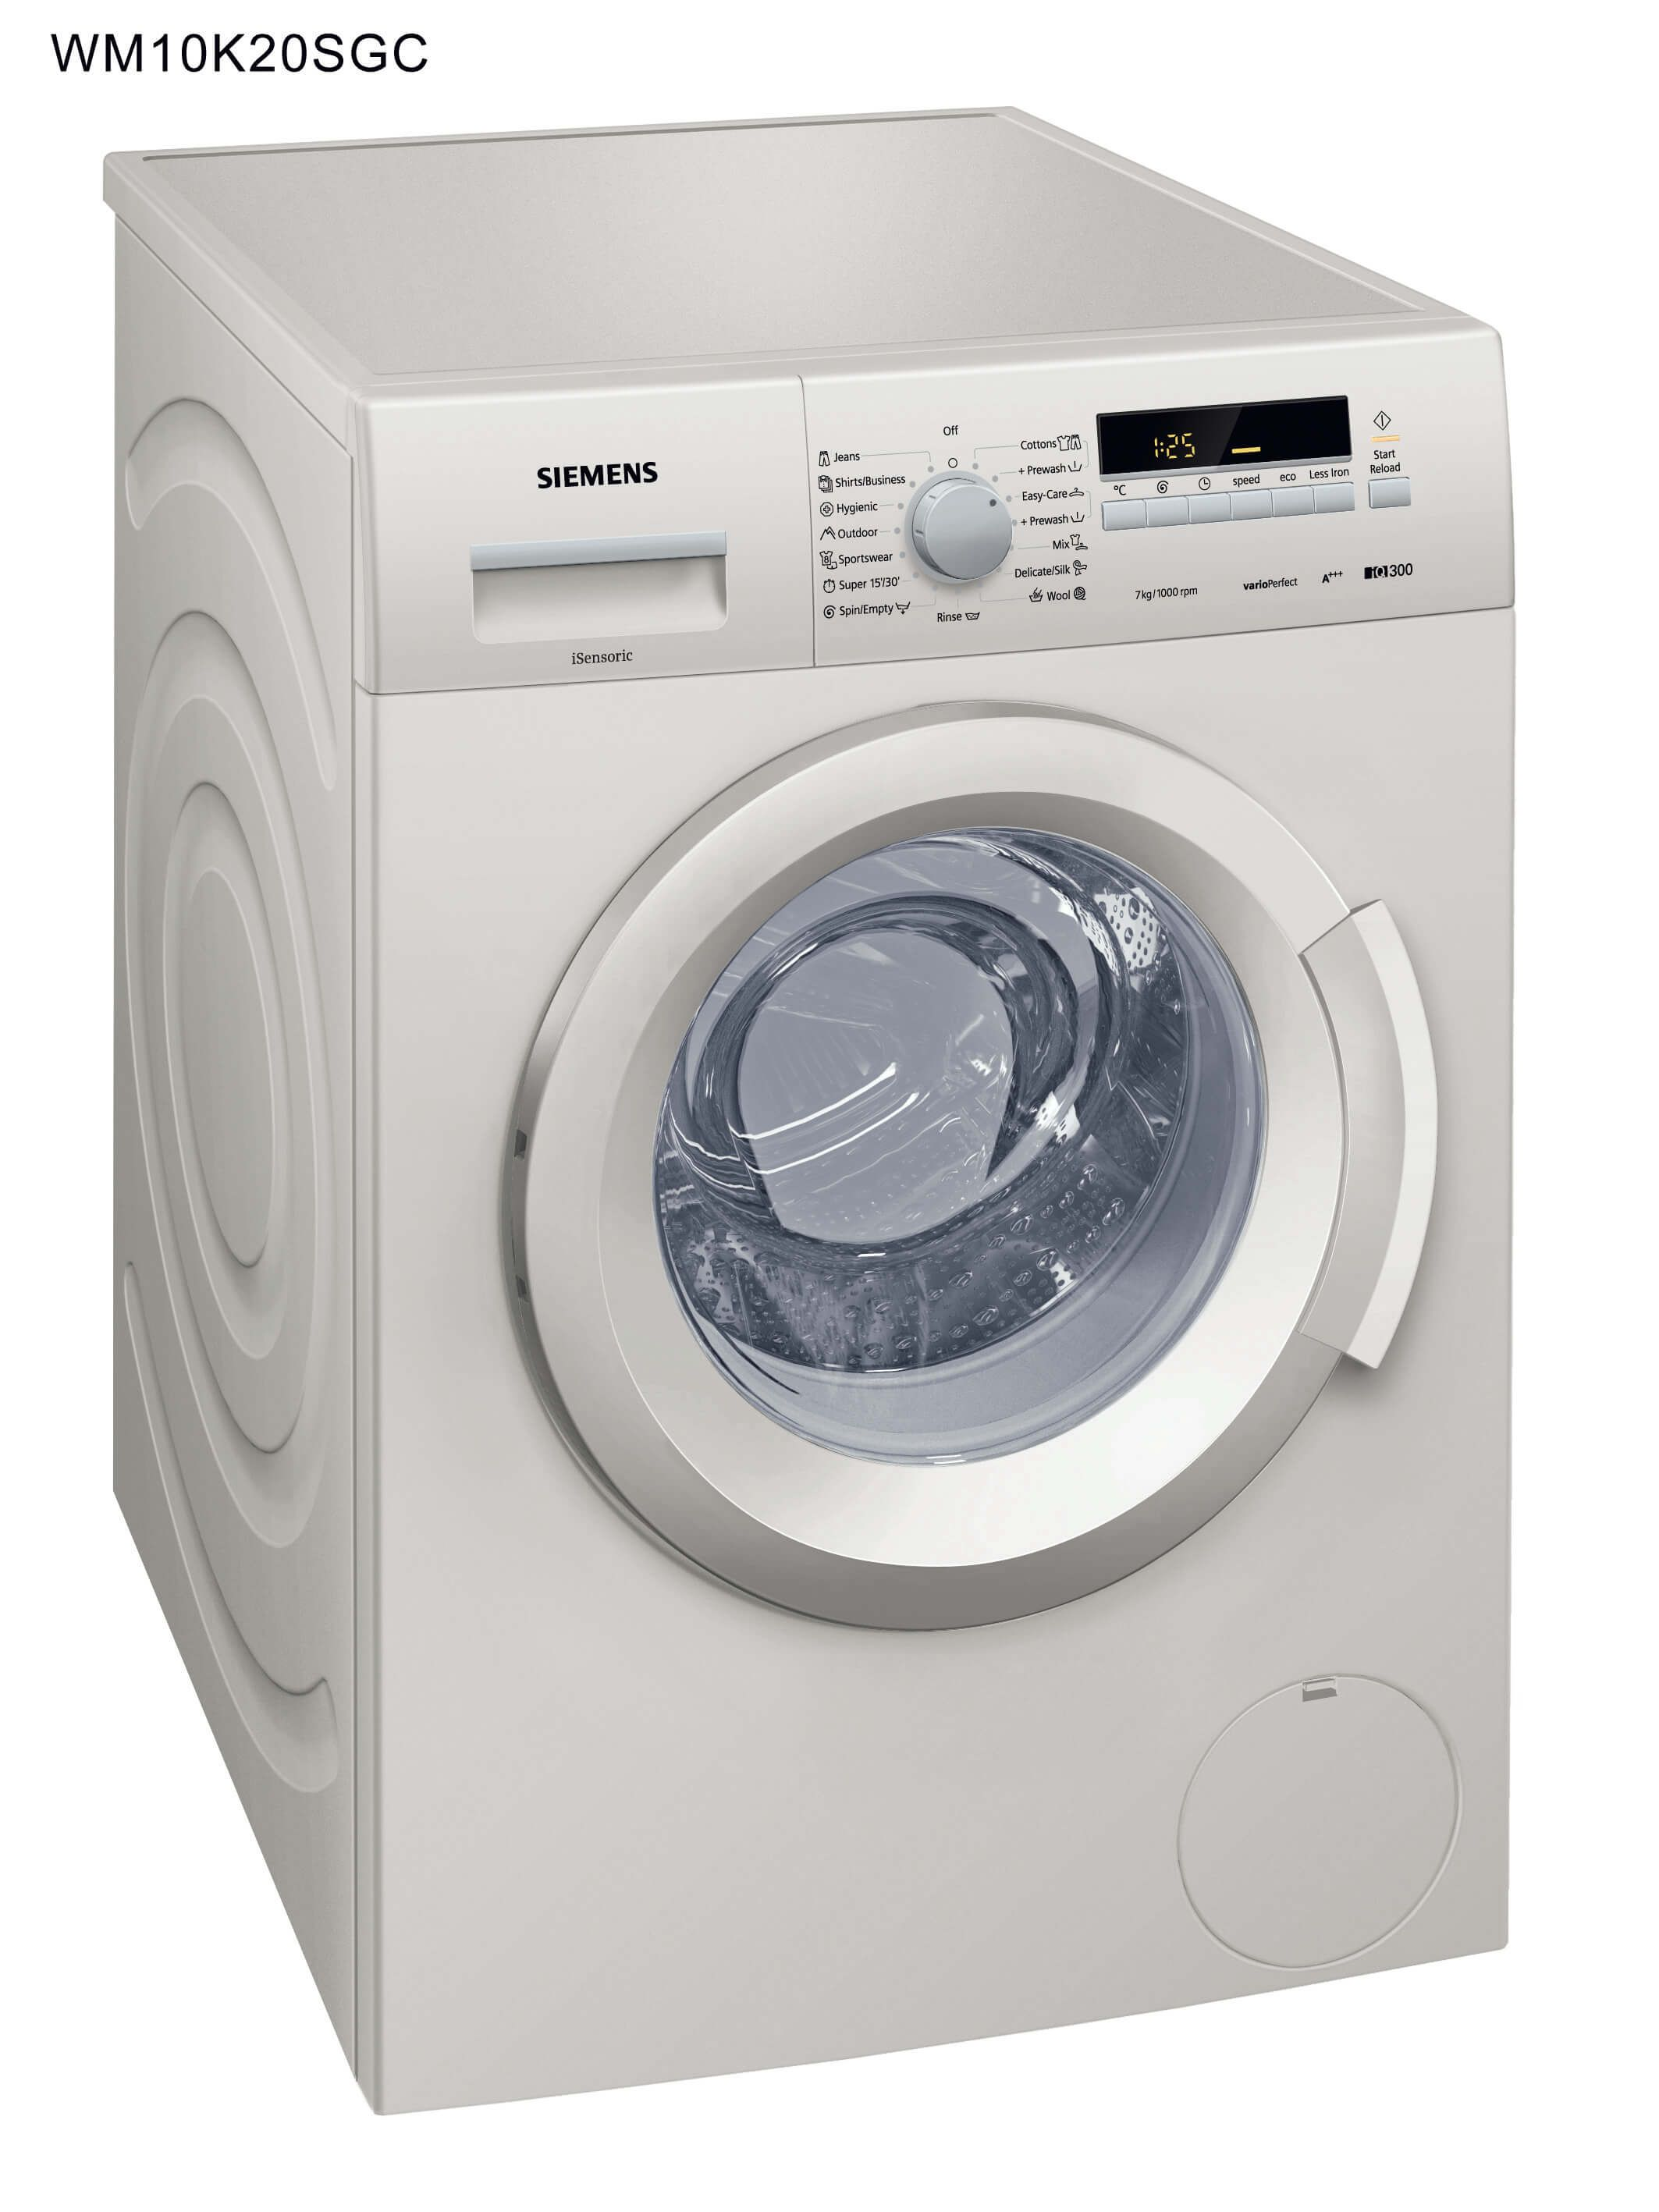 Siemens Washer 7 Kg, Silver - WM10K20SGC